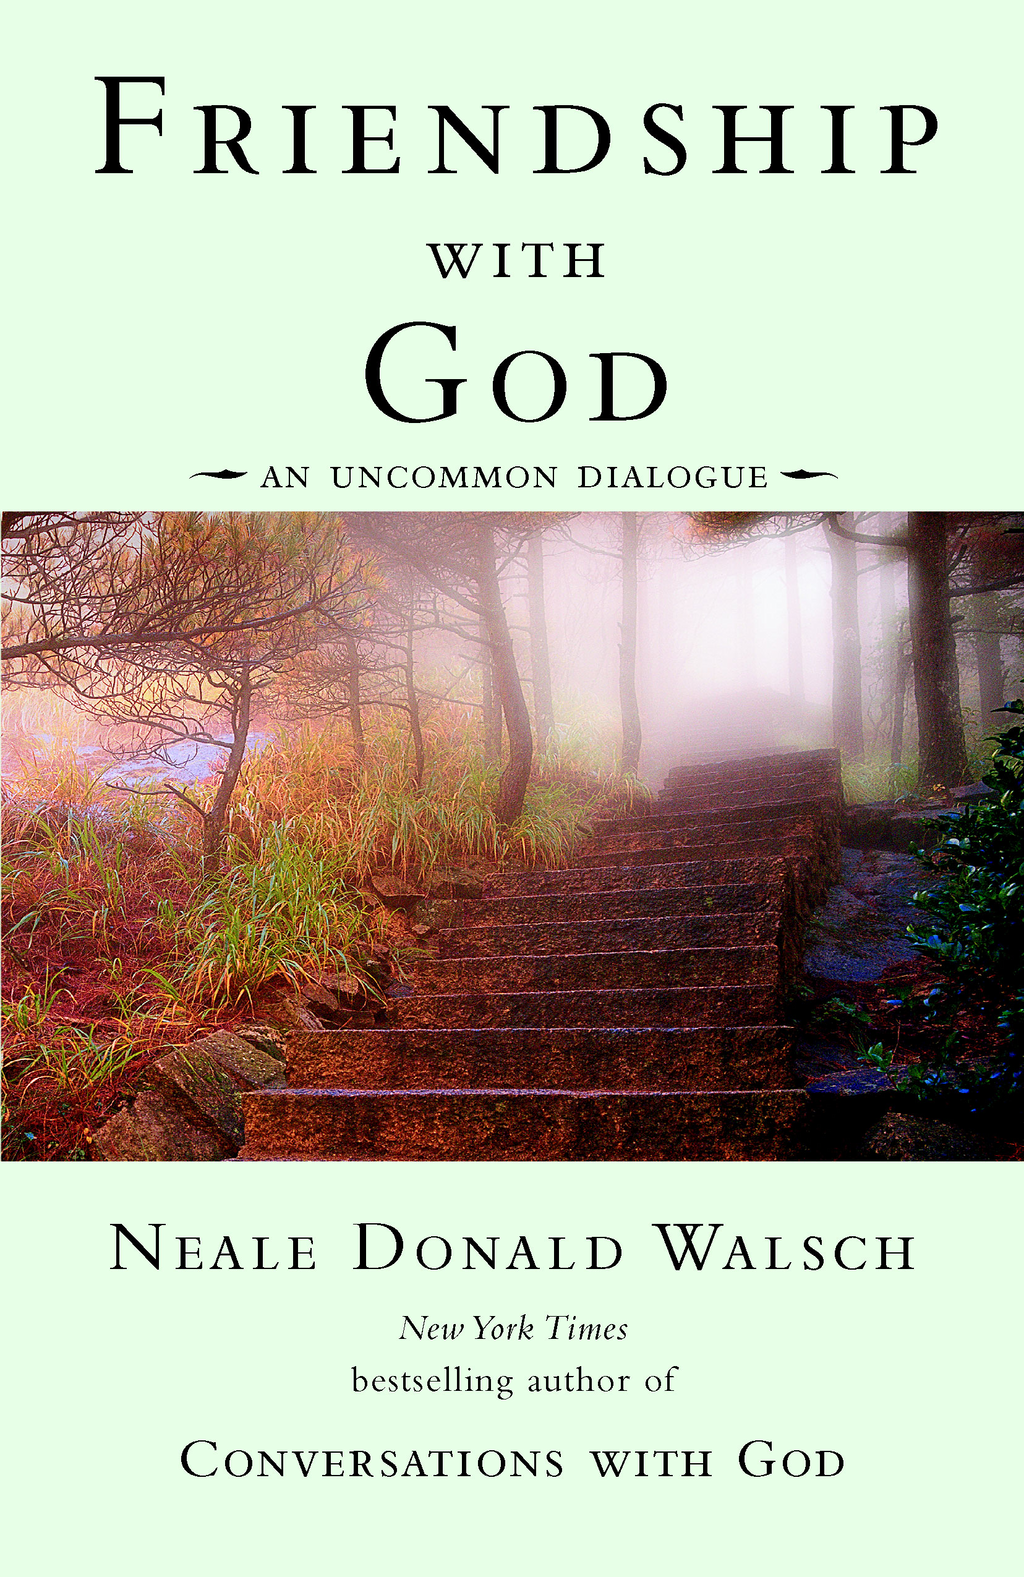 Friendship with God An Uncommon Dialogue